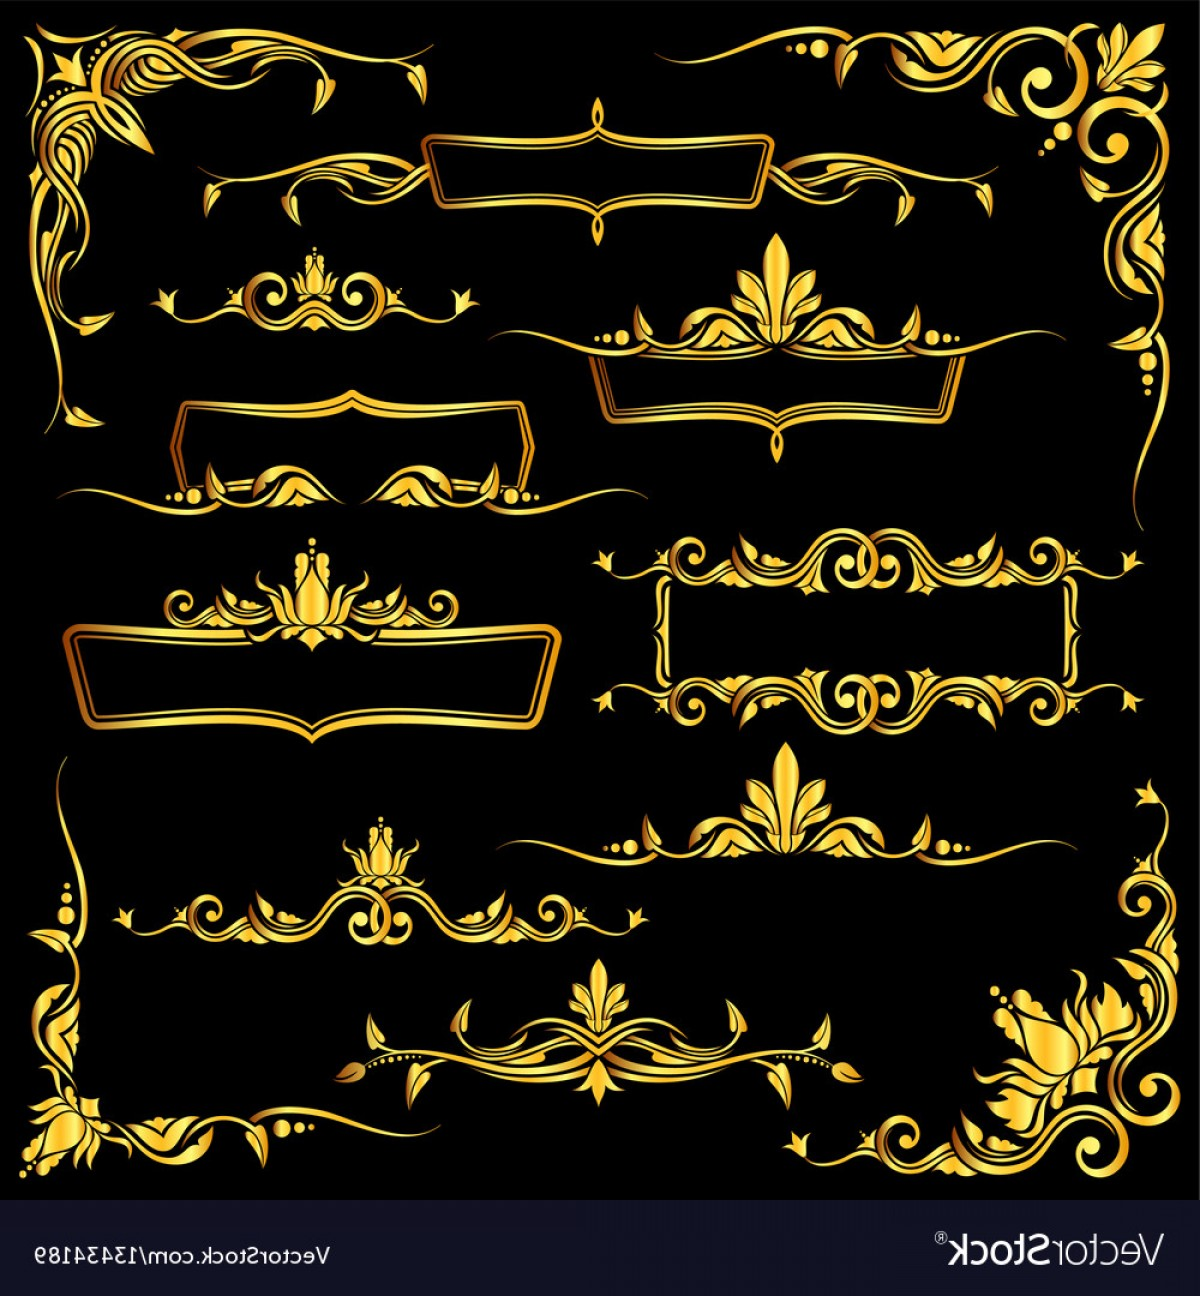 Gold Ornate Borders Vector: Golden Ornate Frames Borders And Corner Vector